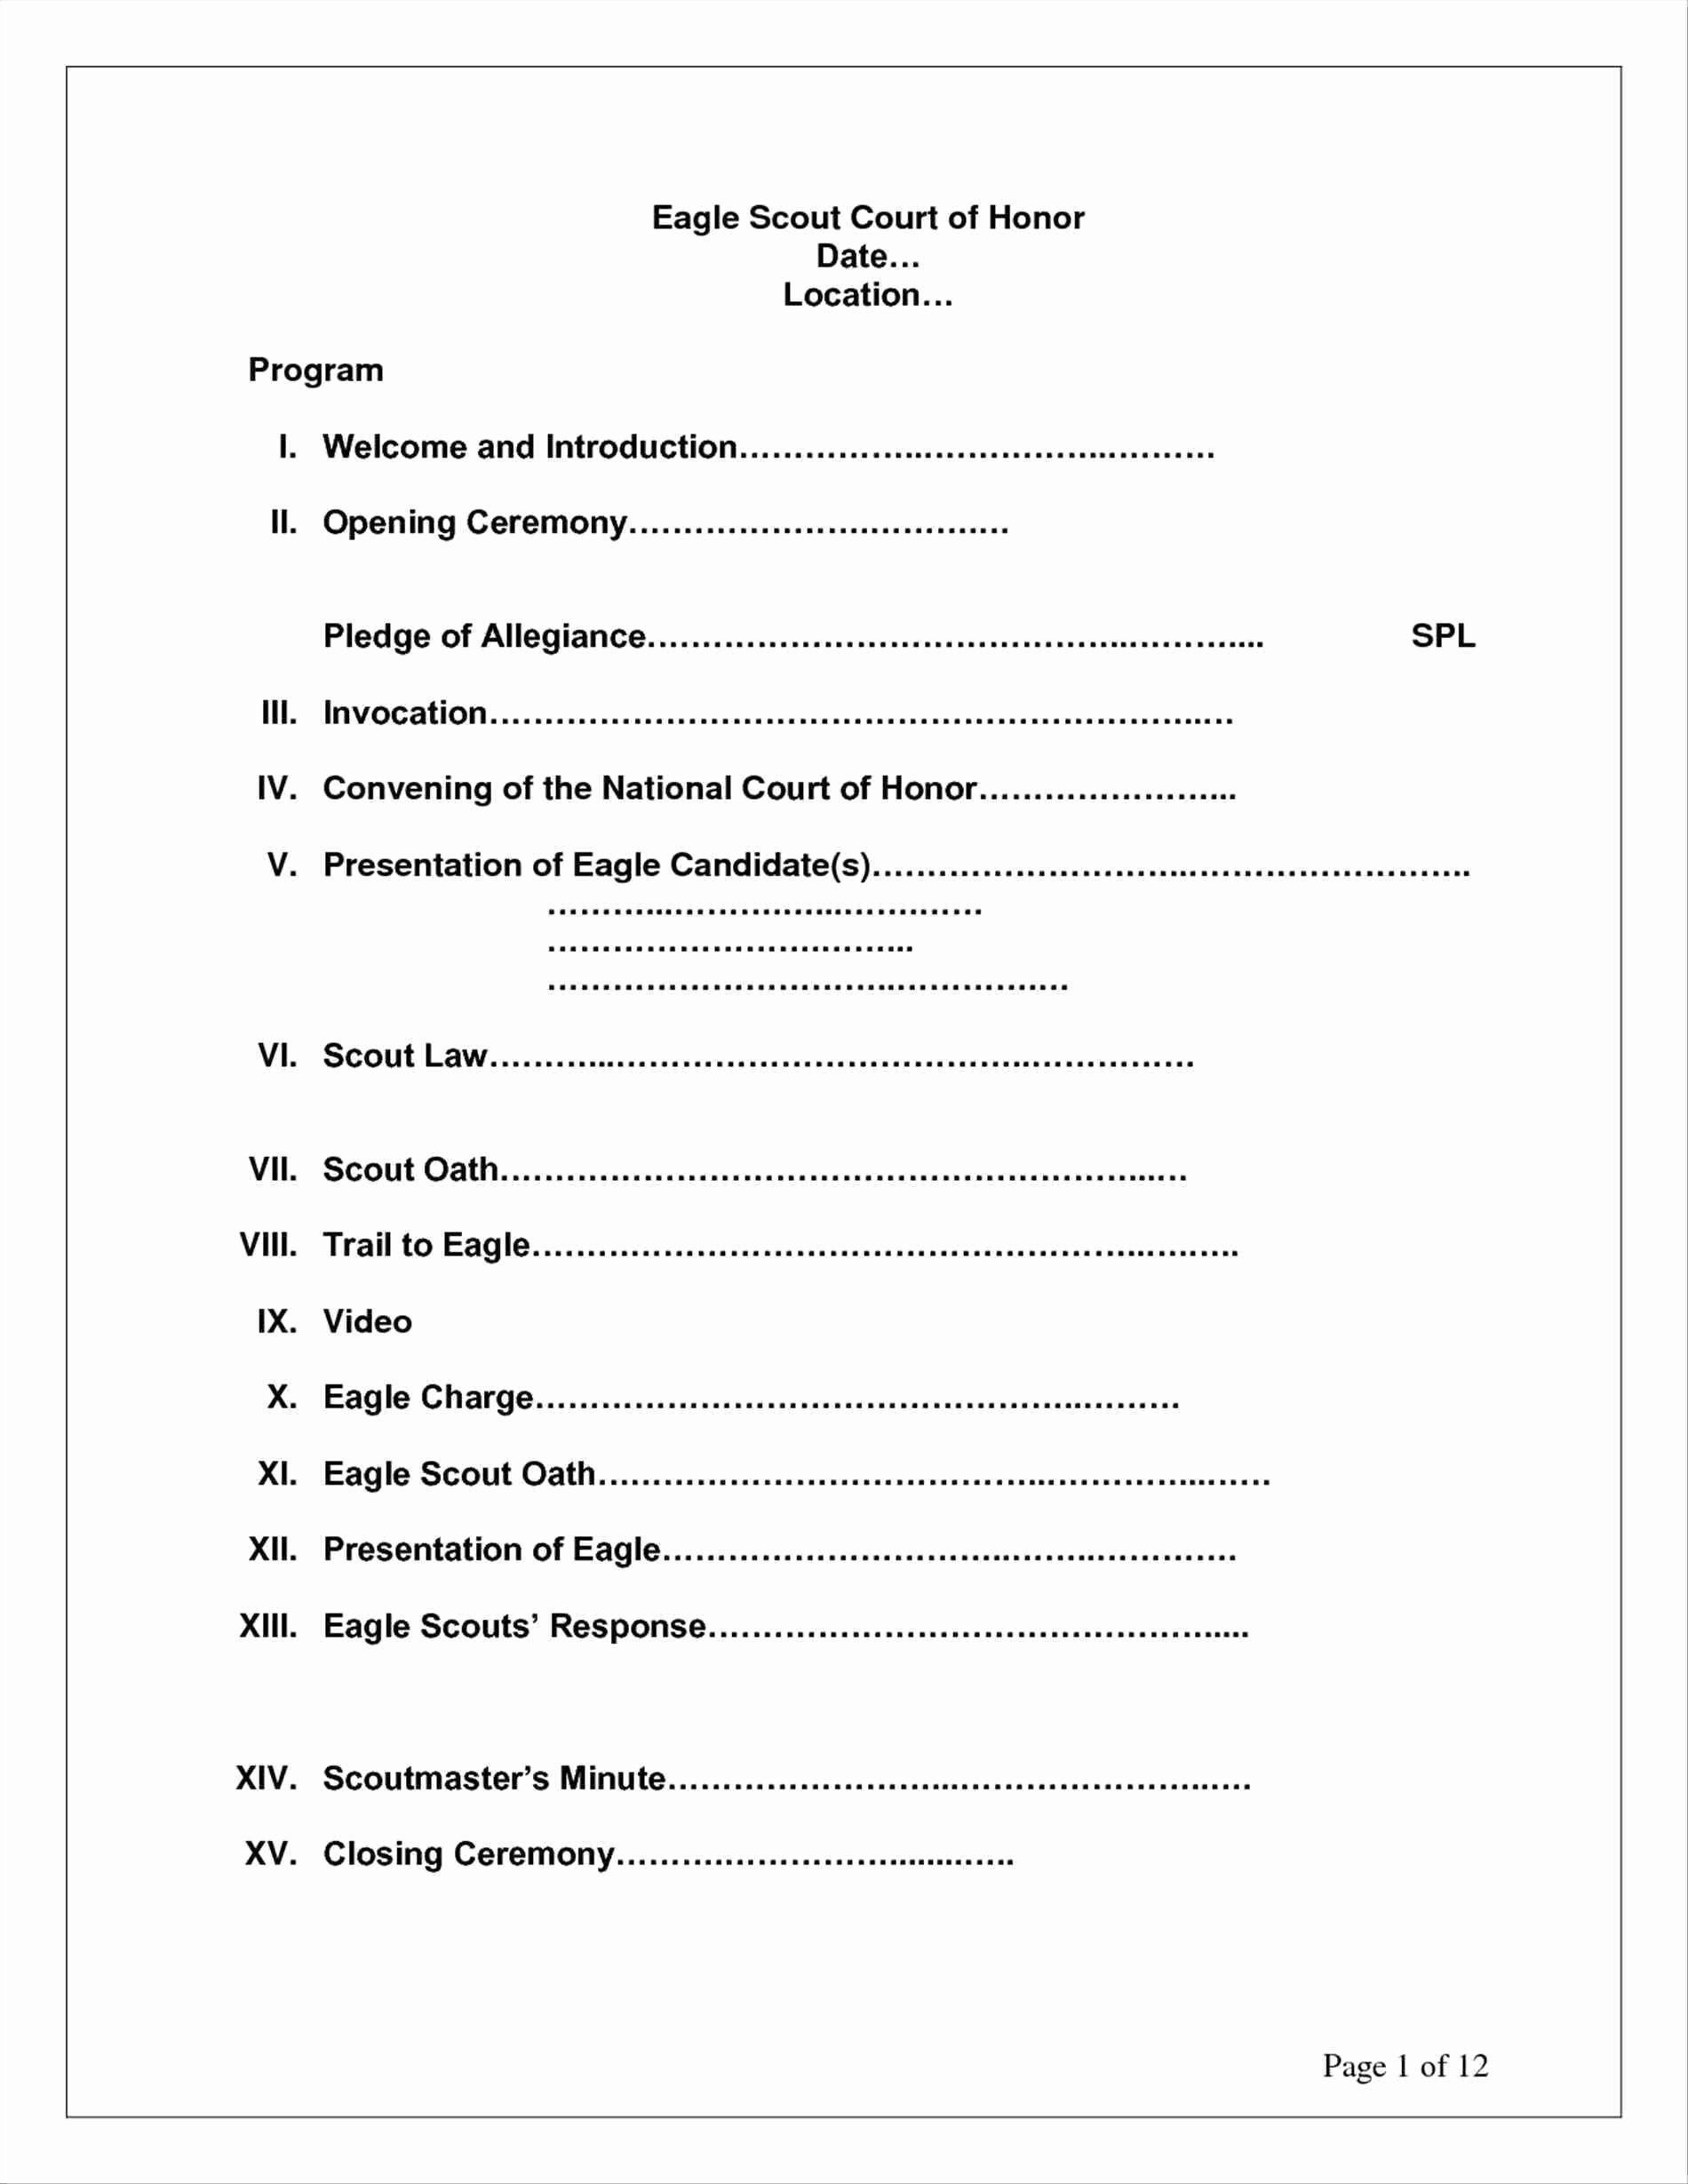 Awesome Eagle Scout Court Honor Program Template Eagle Scout